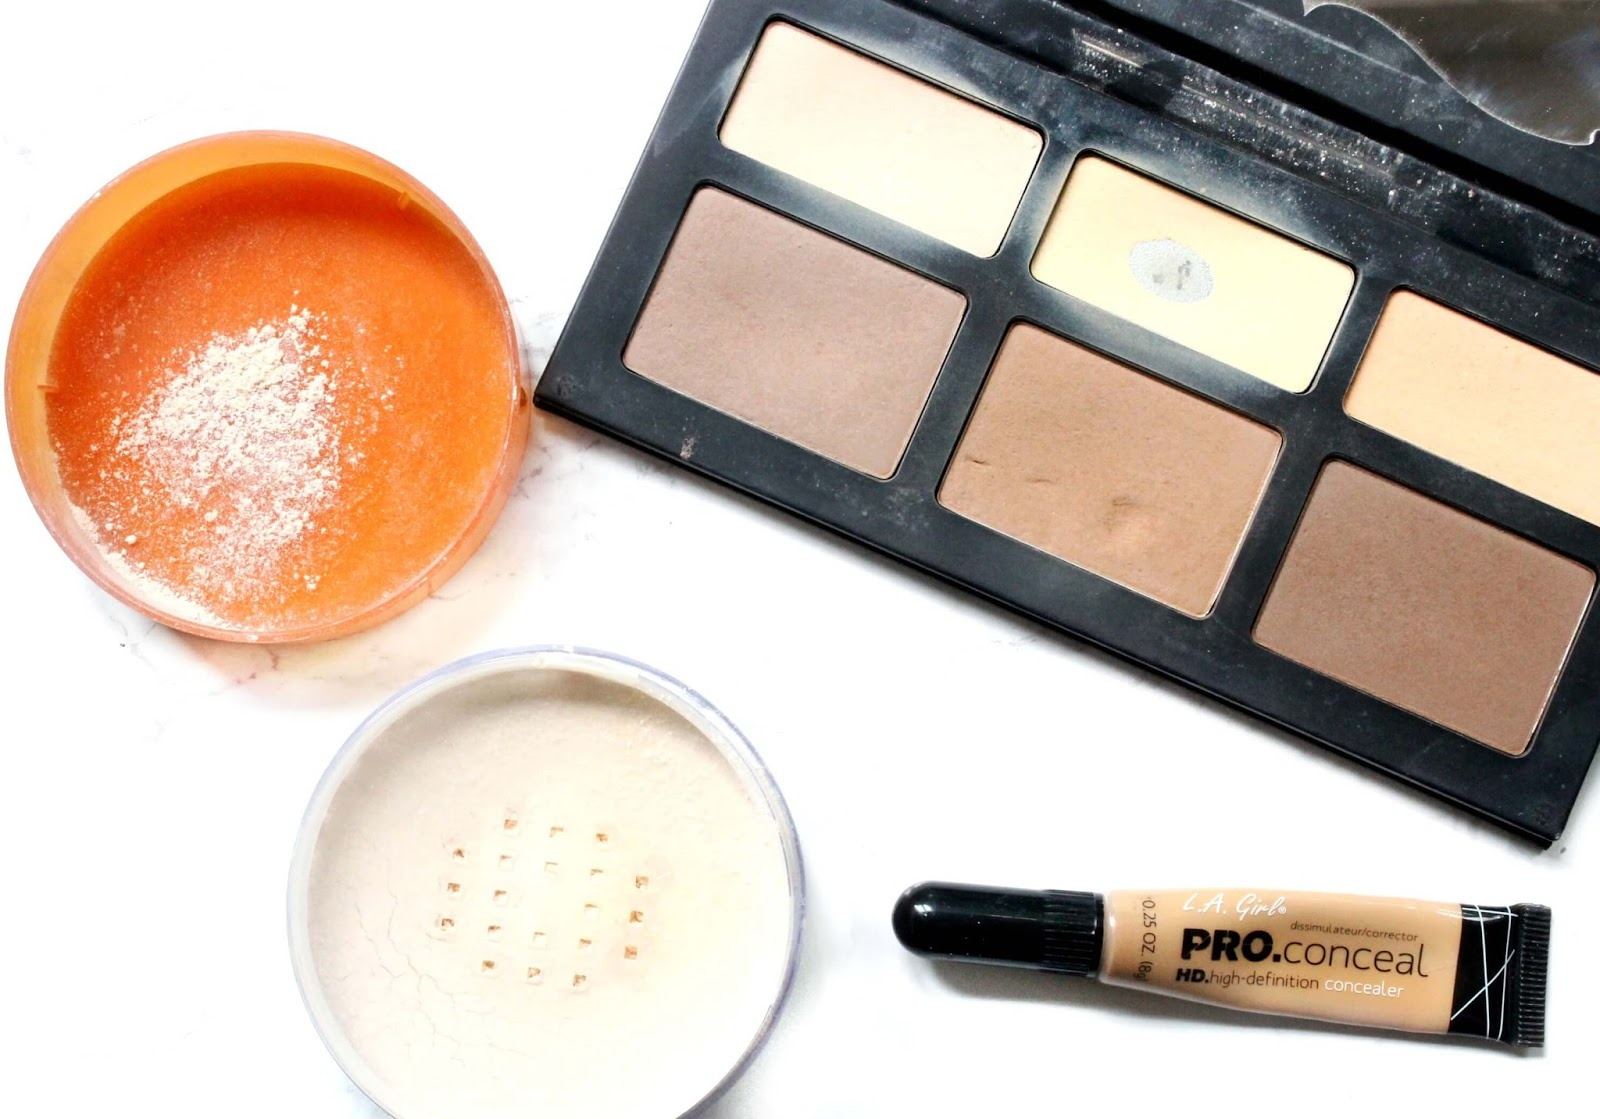 coty airspun loose powder, kat von d shade and light palette, la girl pro conceal HD concealer in pure beige